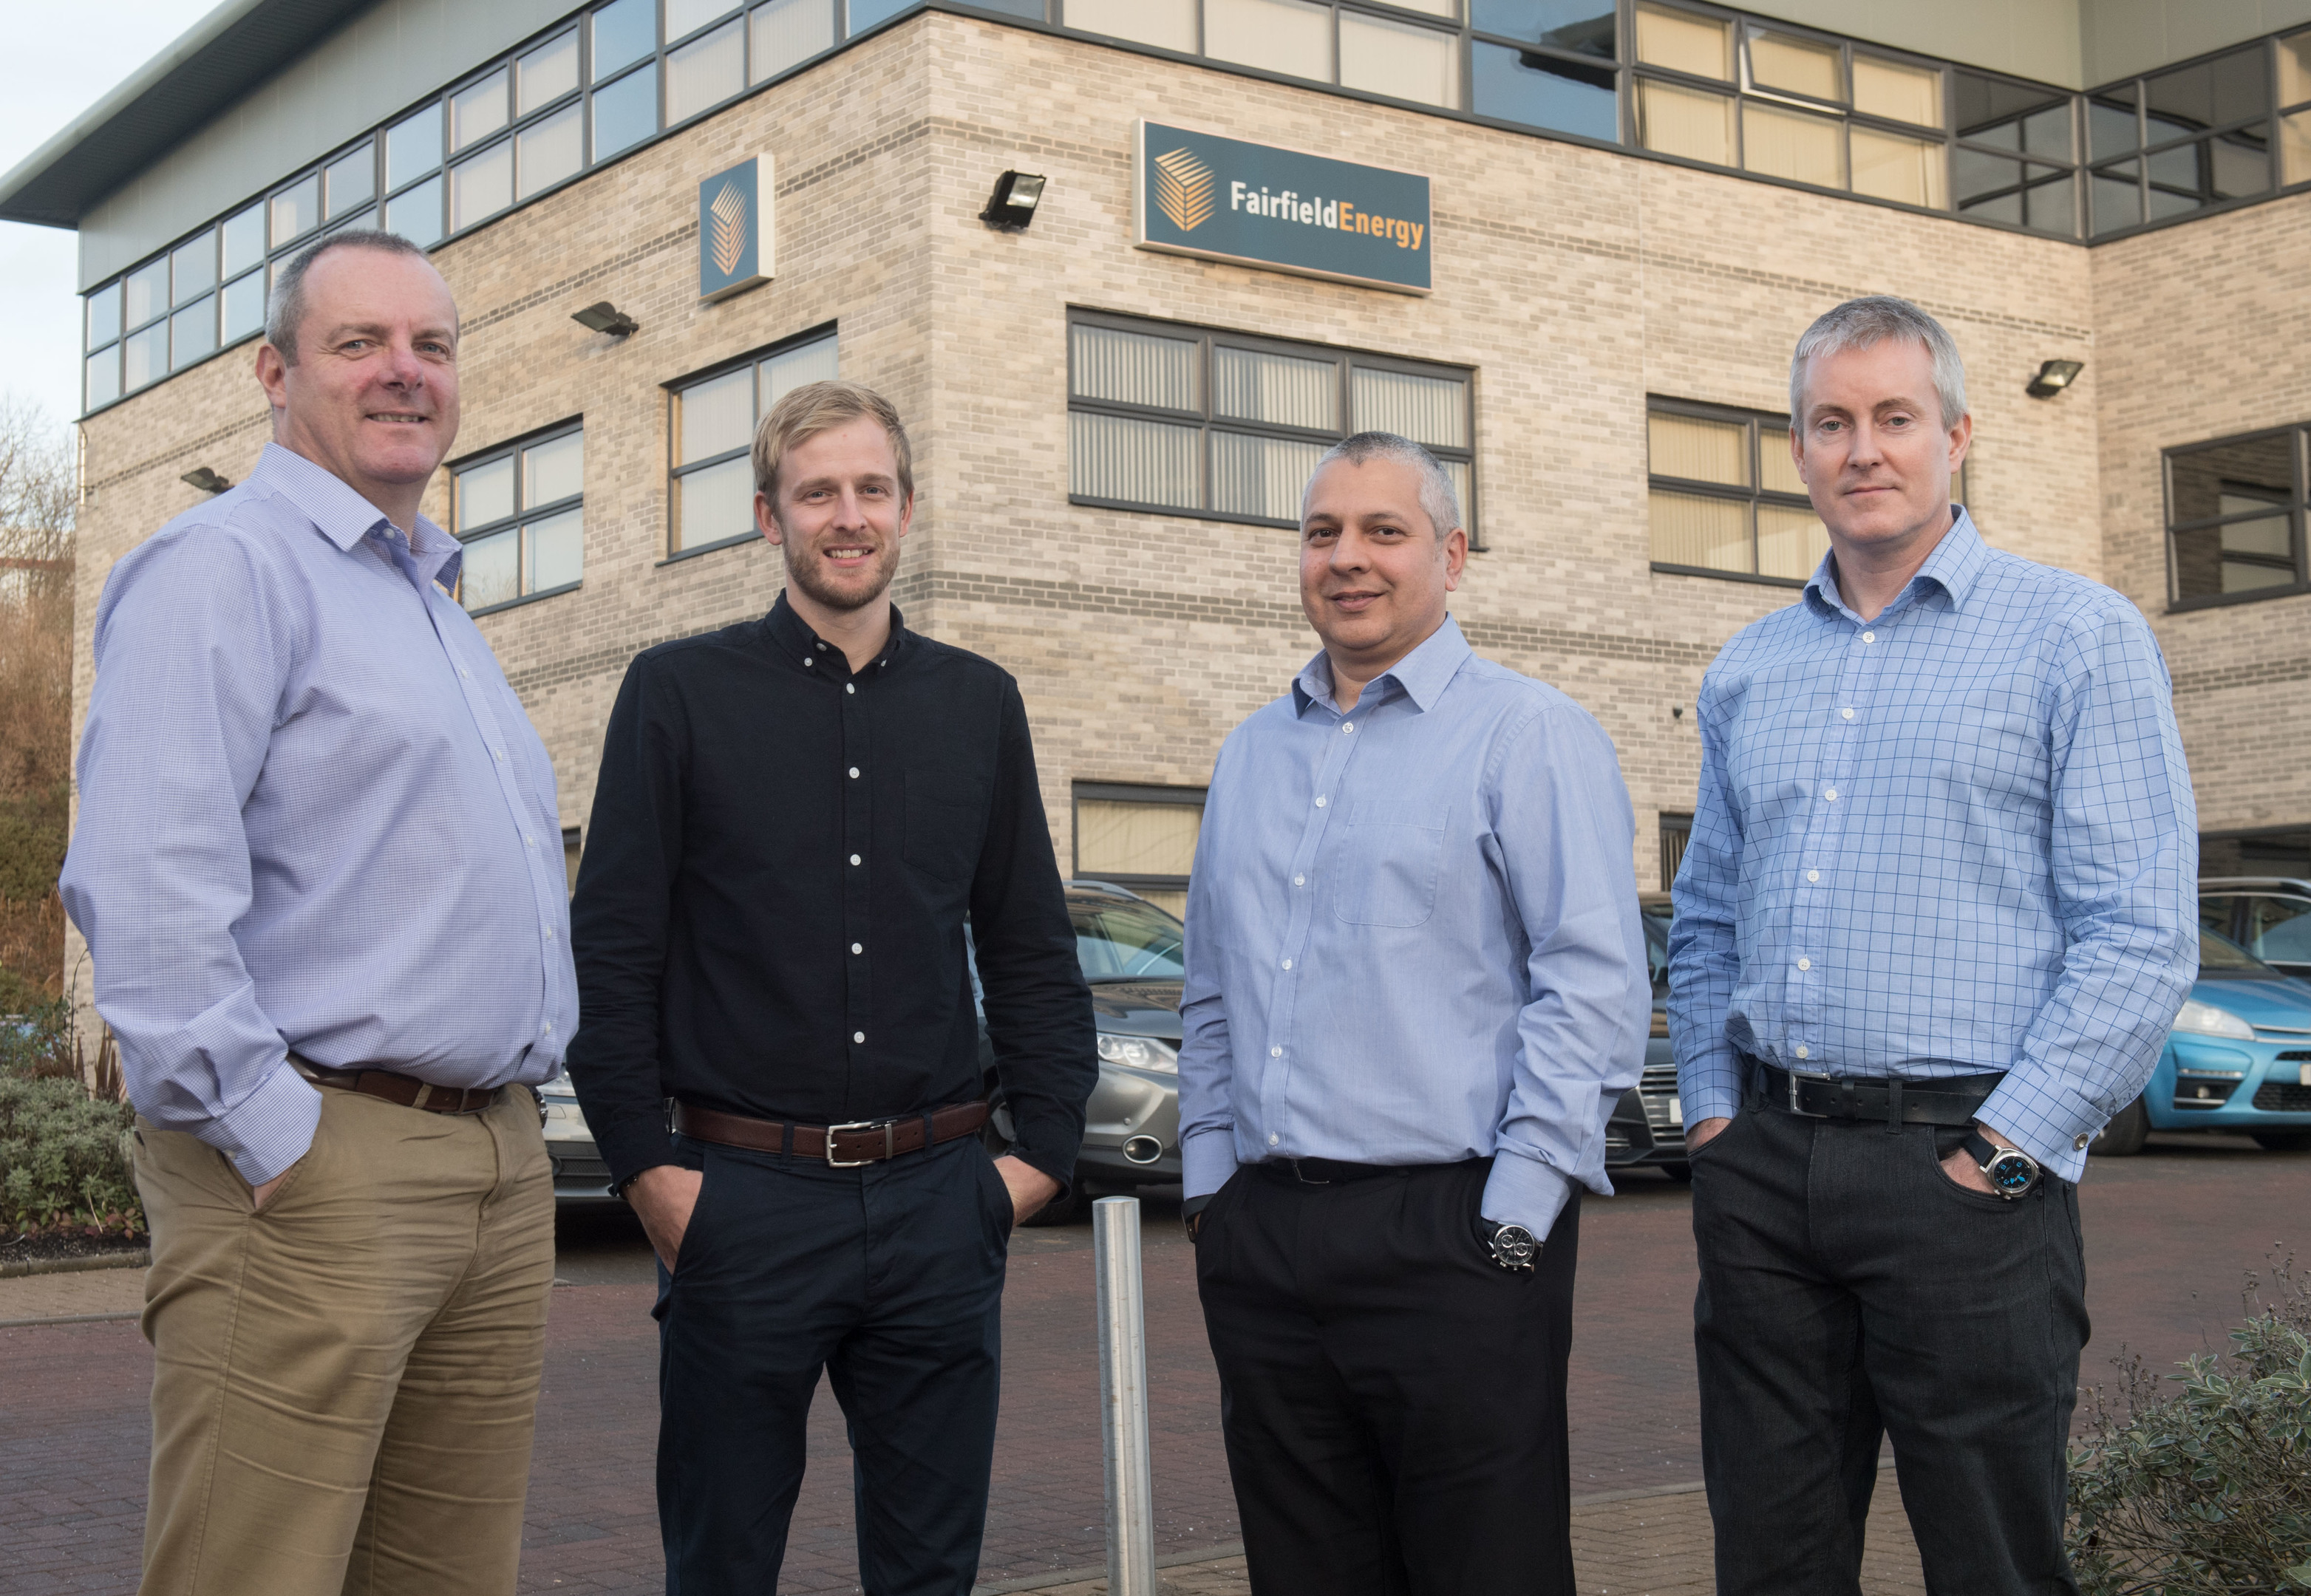 . L – R: Ian Bibby (Fairfield), Stephen Wylie (Ardyne), David Stewart (Ardyne), Iain Mackay (Fairfield).  Fairfield Energy and Ardyne celebrate successful partnership.  Pictured is l to r: Ian Bibby, Stephen Wylie, David Stewart, Iain Mackay.    Picture by Michal Wachucik / Abermedia